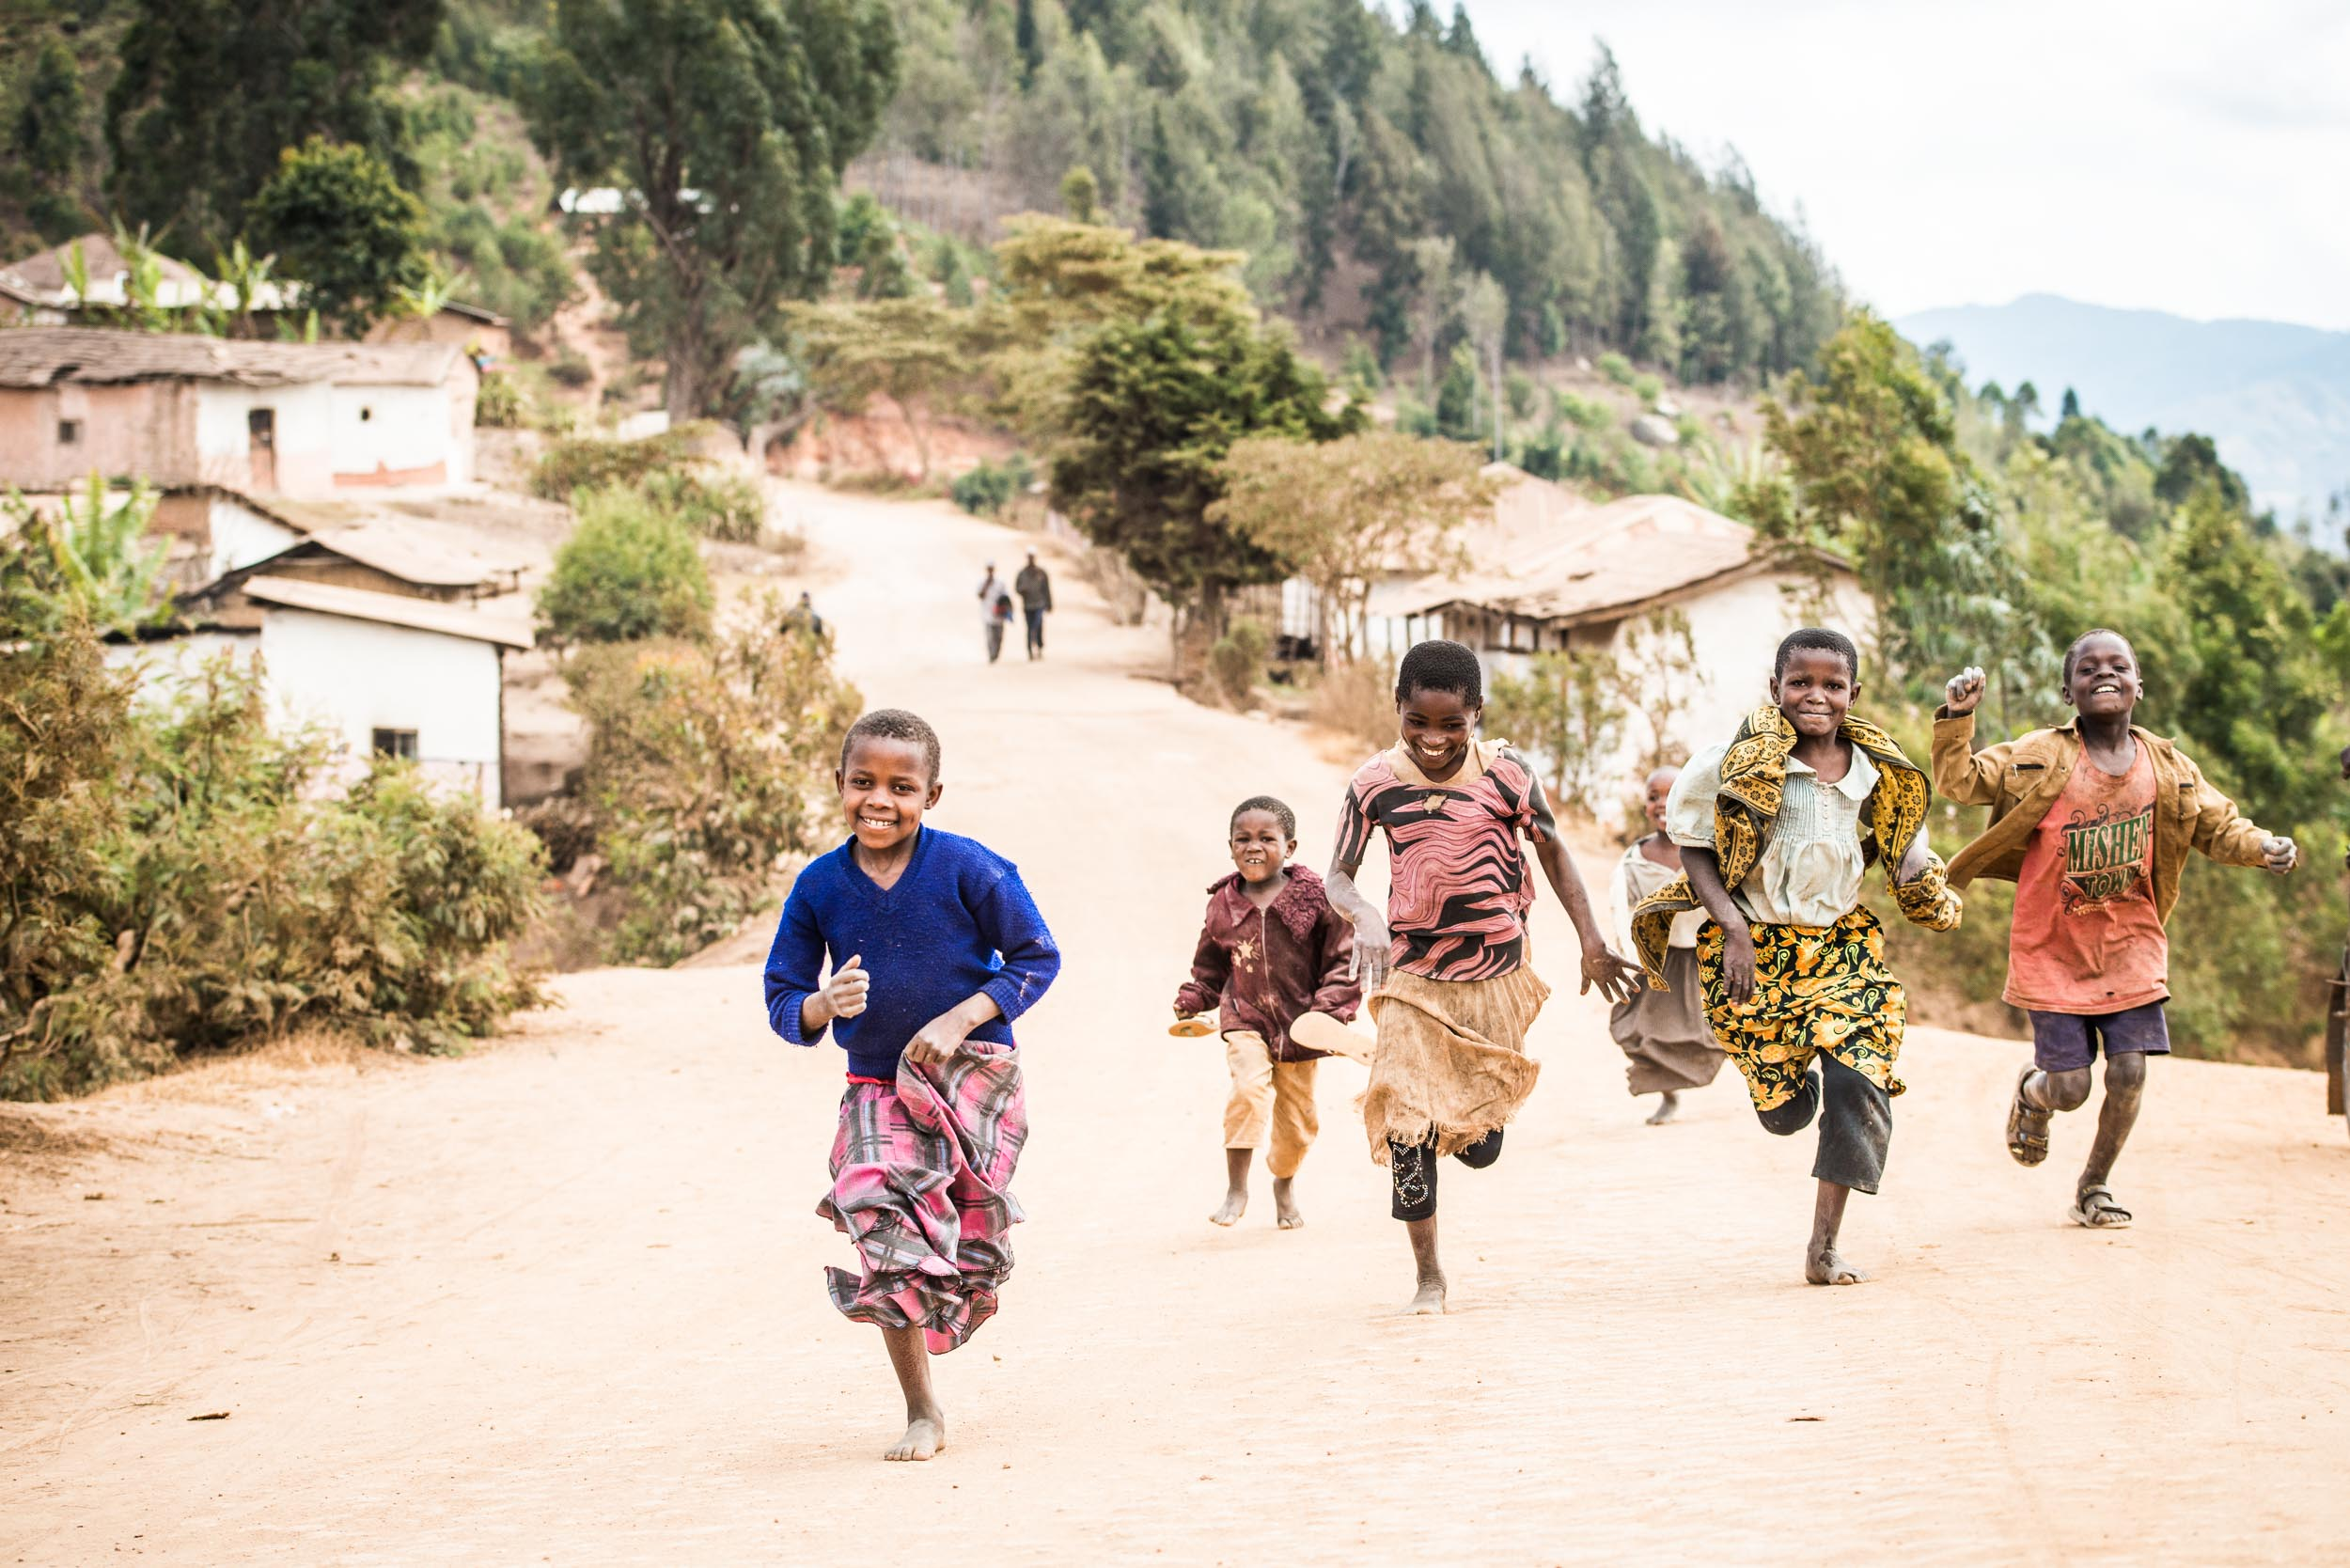 Children running - Travel - Photo credit Nicola Bailey.jpg